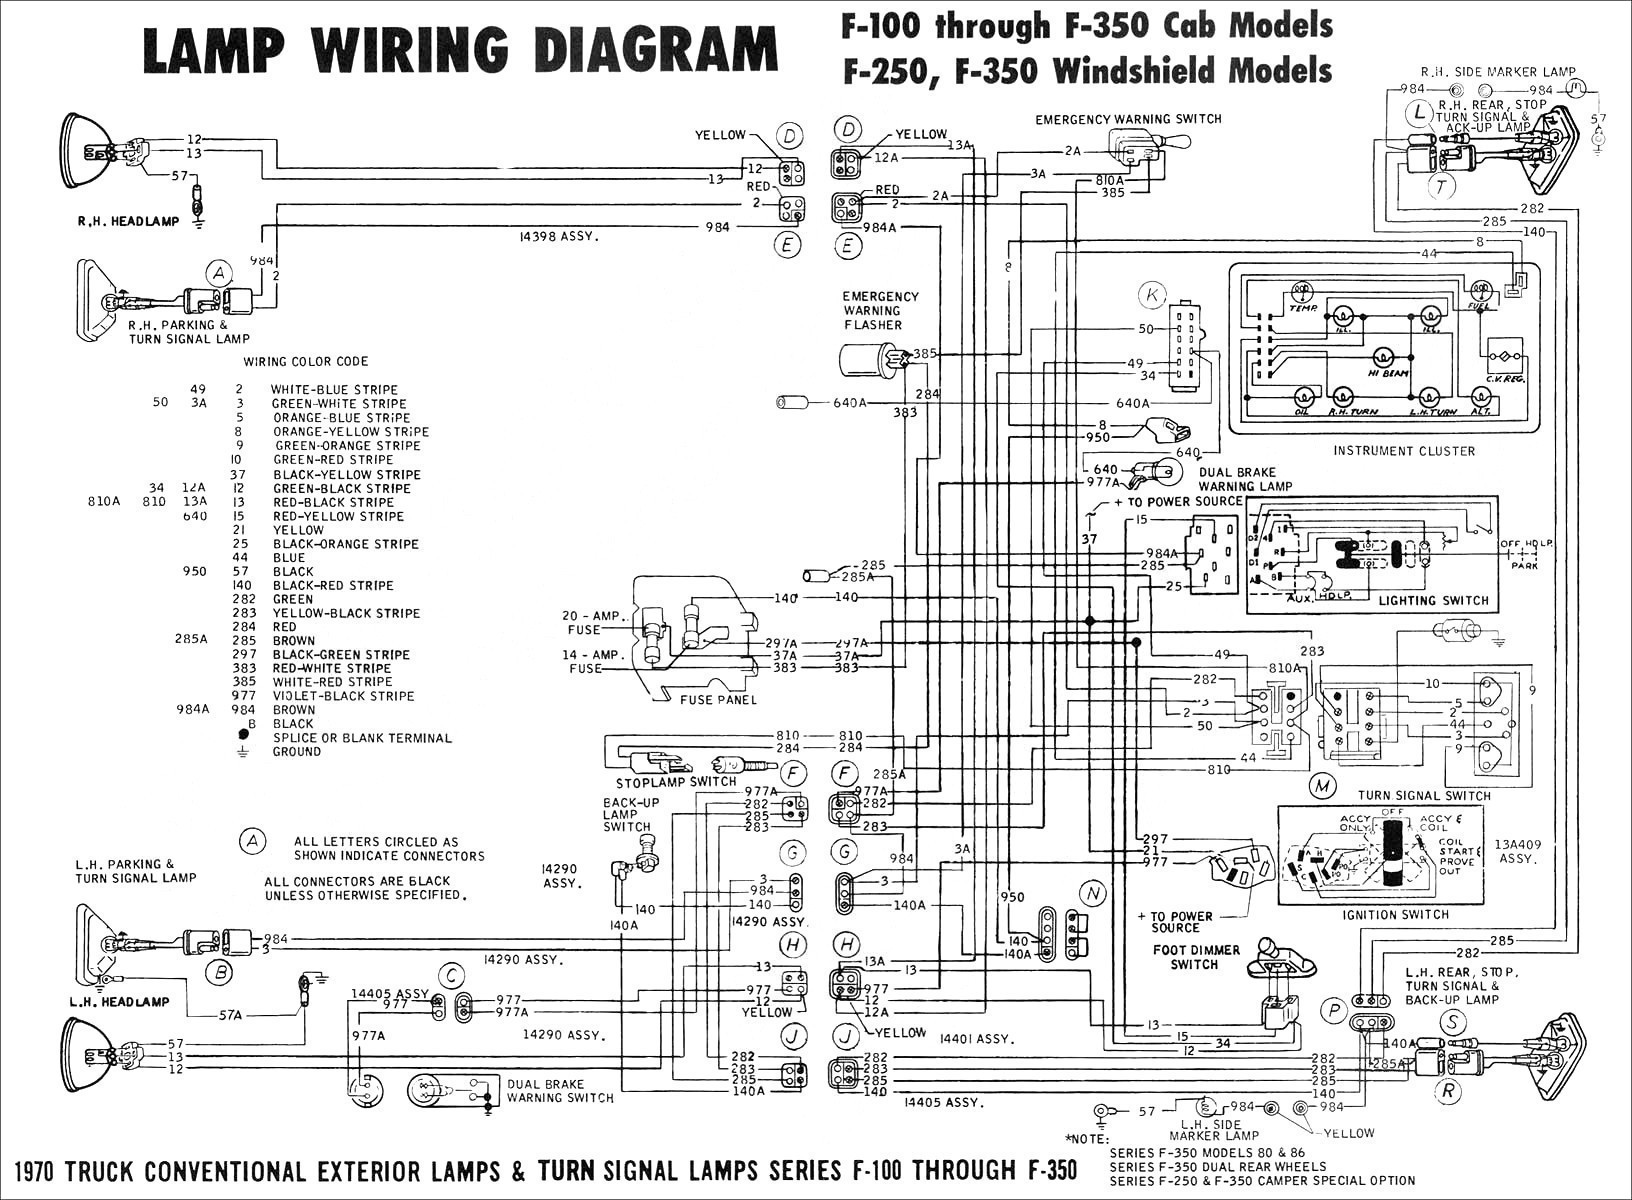 1999 Audi A4 Engine Diagram 2000 Audi A4 Radio Wiring Diagram Valid 1999 Nissan Altima Radio Of 1999 Audi A4 Engine Diagram